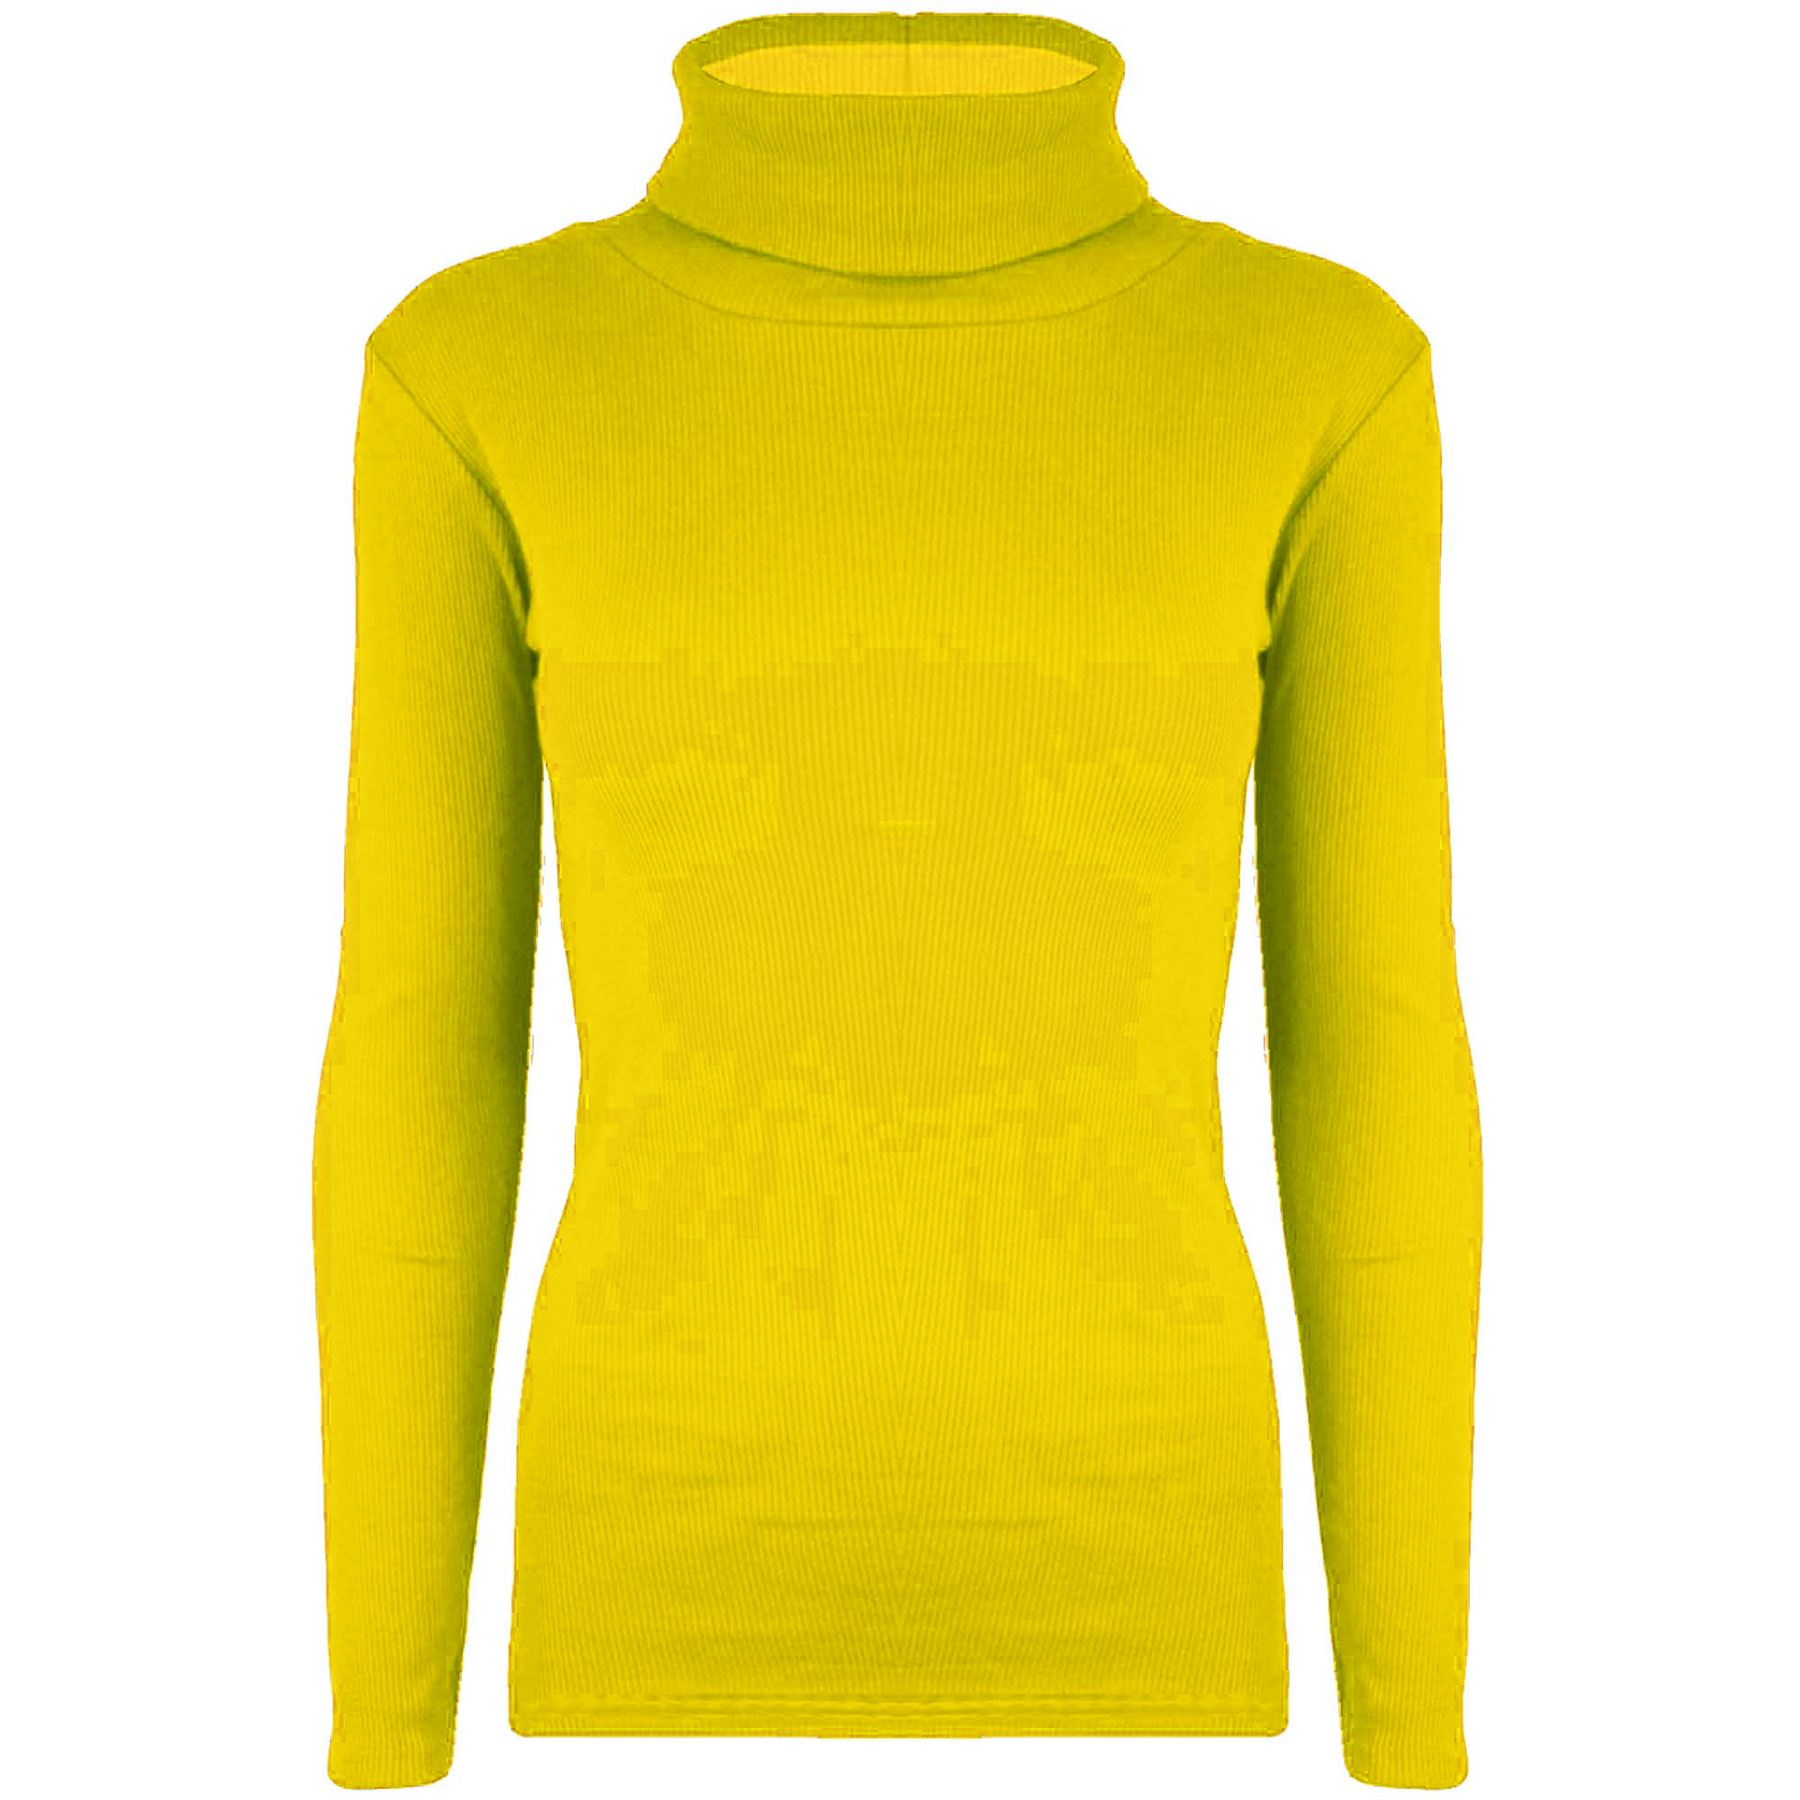 Ladies Ribbed Stretchy Fitted Turtle Roll Polo Neck Jumper Womens T Shirt Top